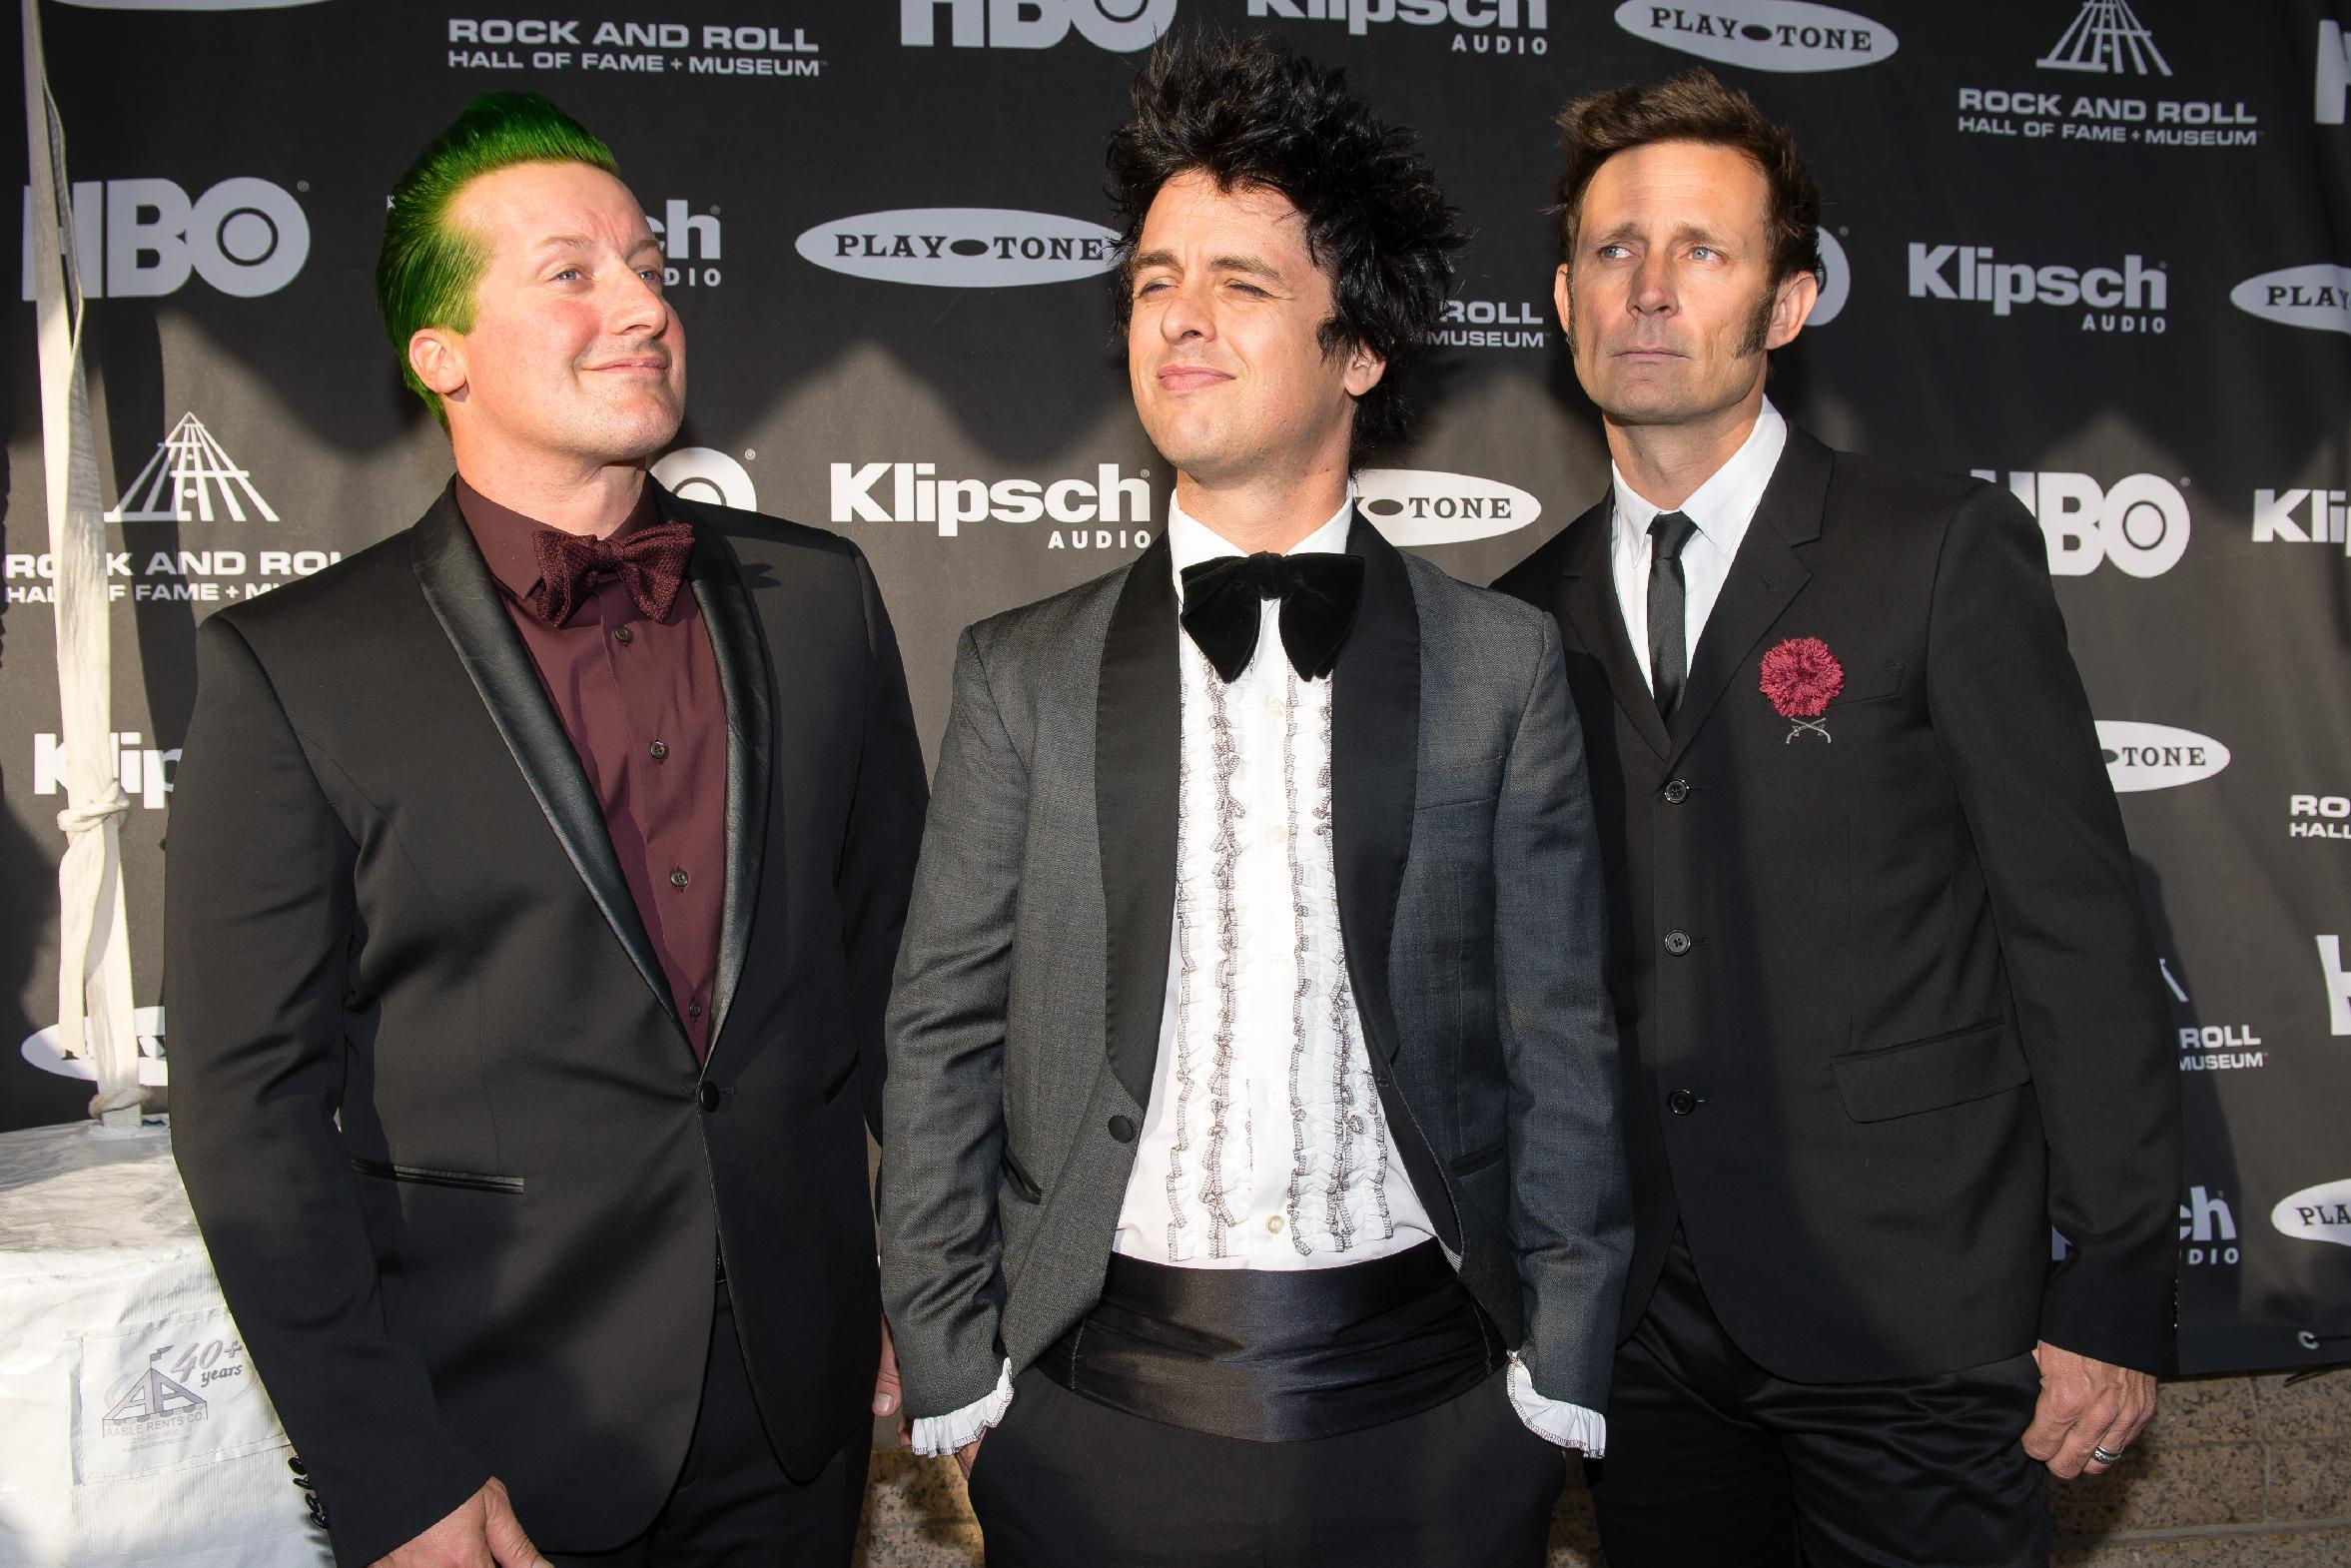 Green Day plows into Rock Hall along with Jett, Ringo